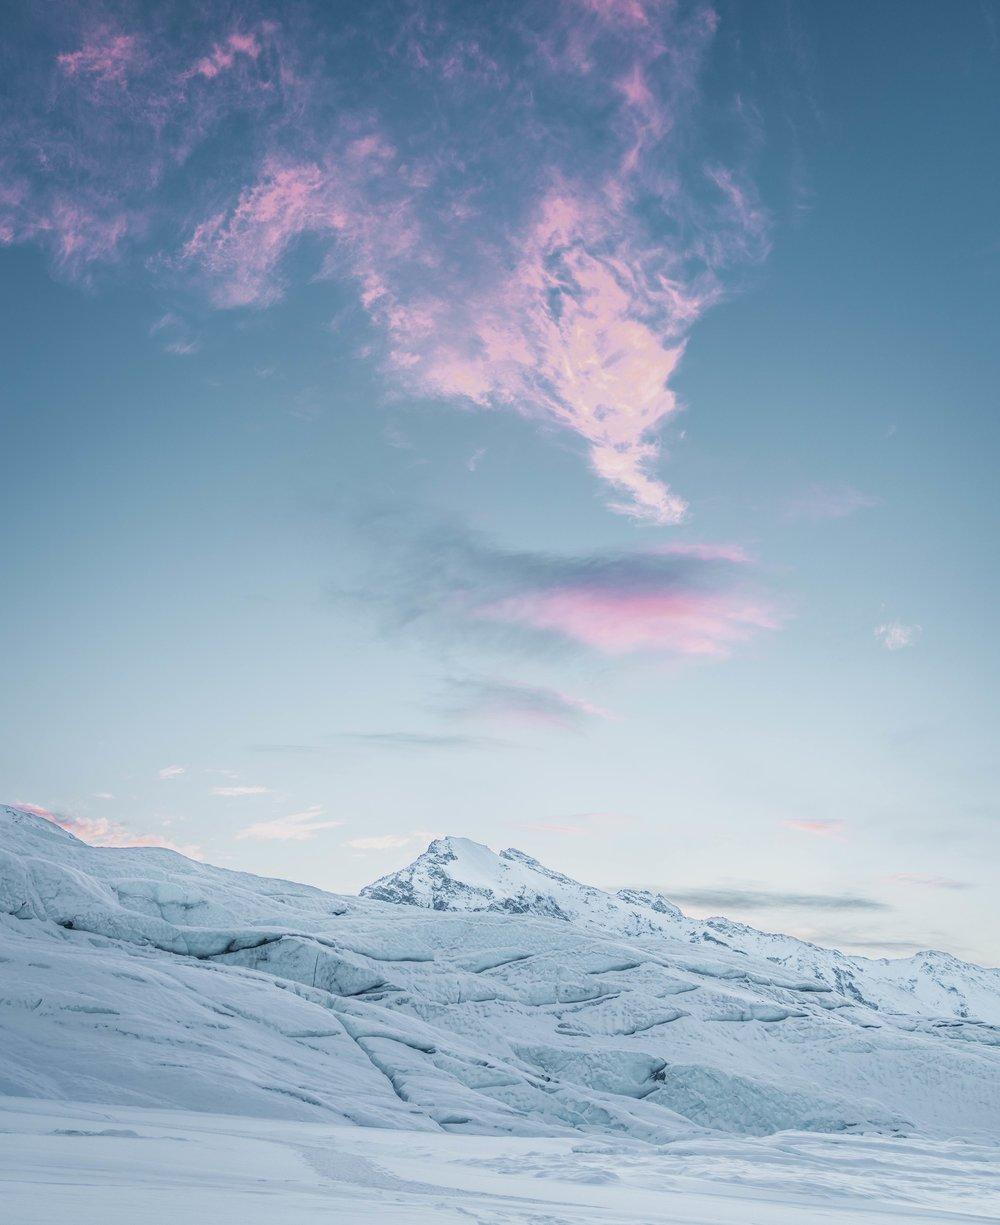 NORTHERN                      - Alaska, 2017Only in winter season, somewhere north, you will get this kind of vision, that everything is painted in white, while the one and only vibrant color is offered by the sun. That's the time when magic happens.